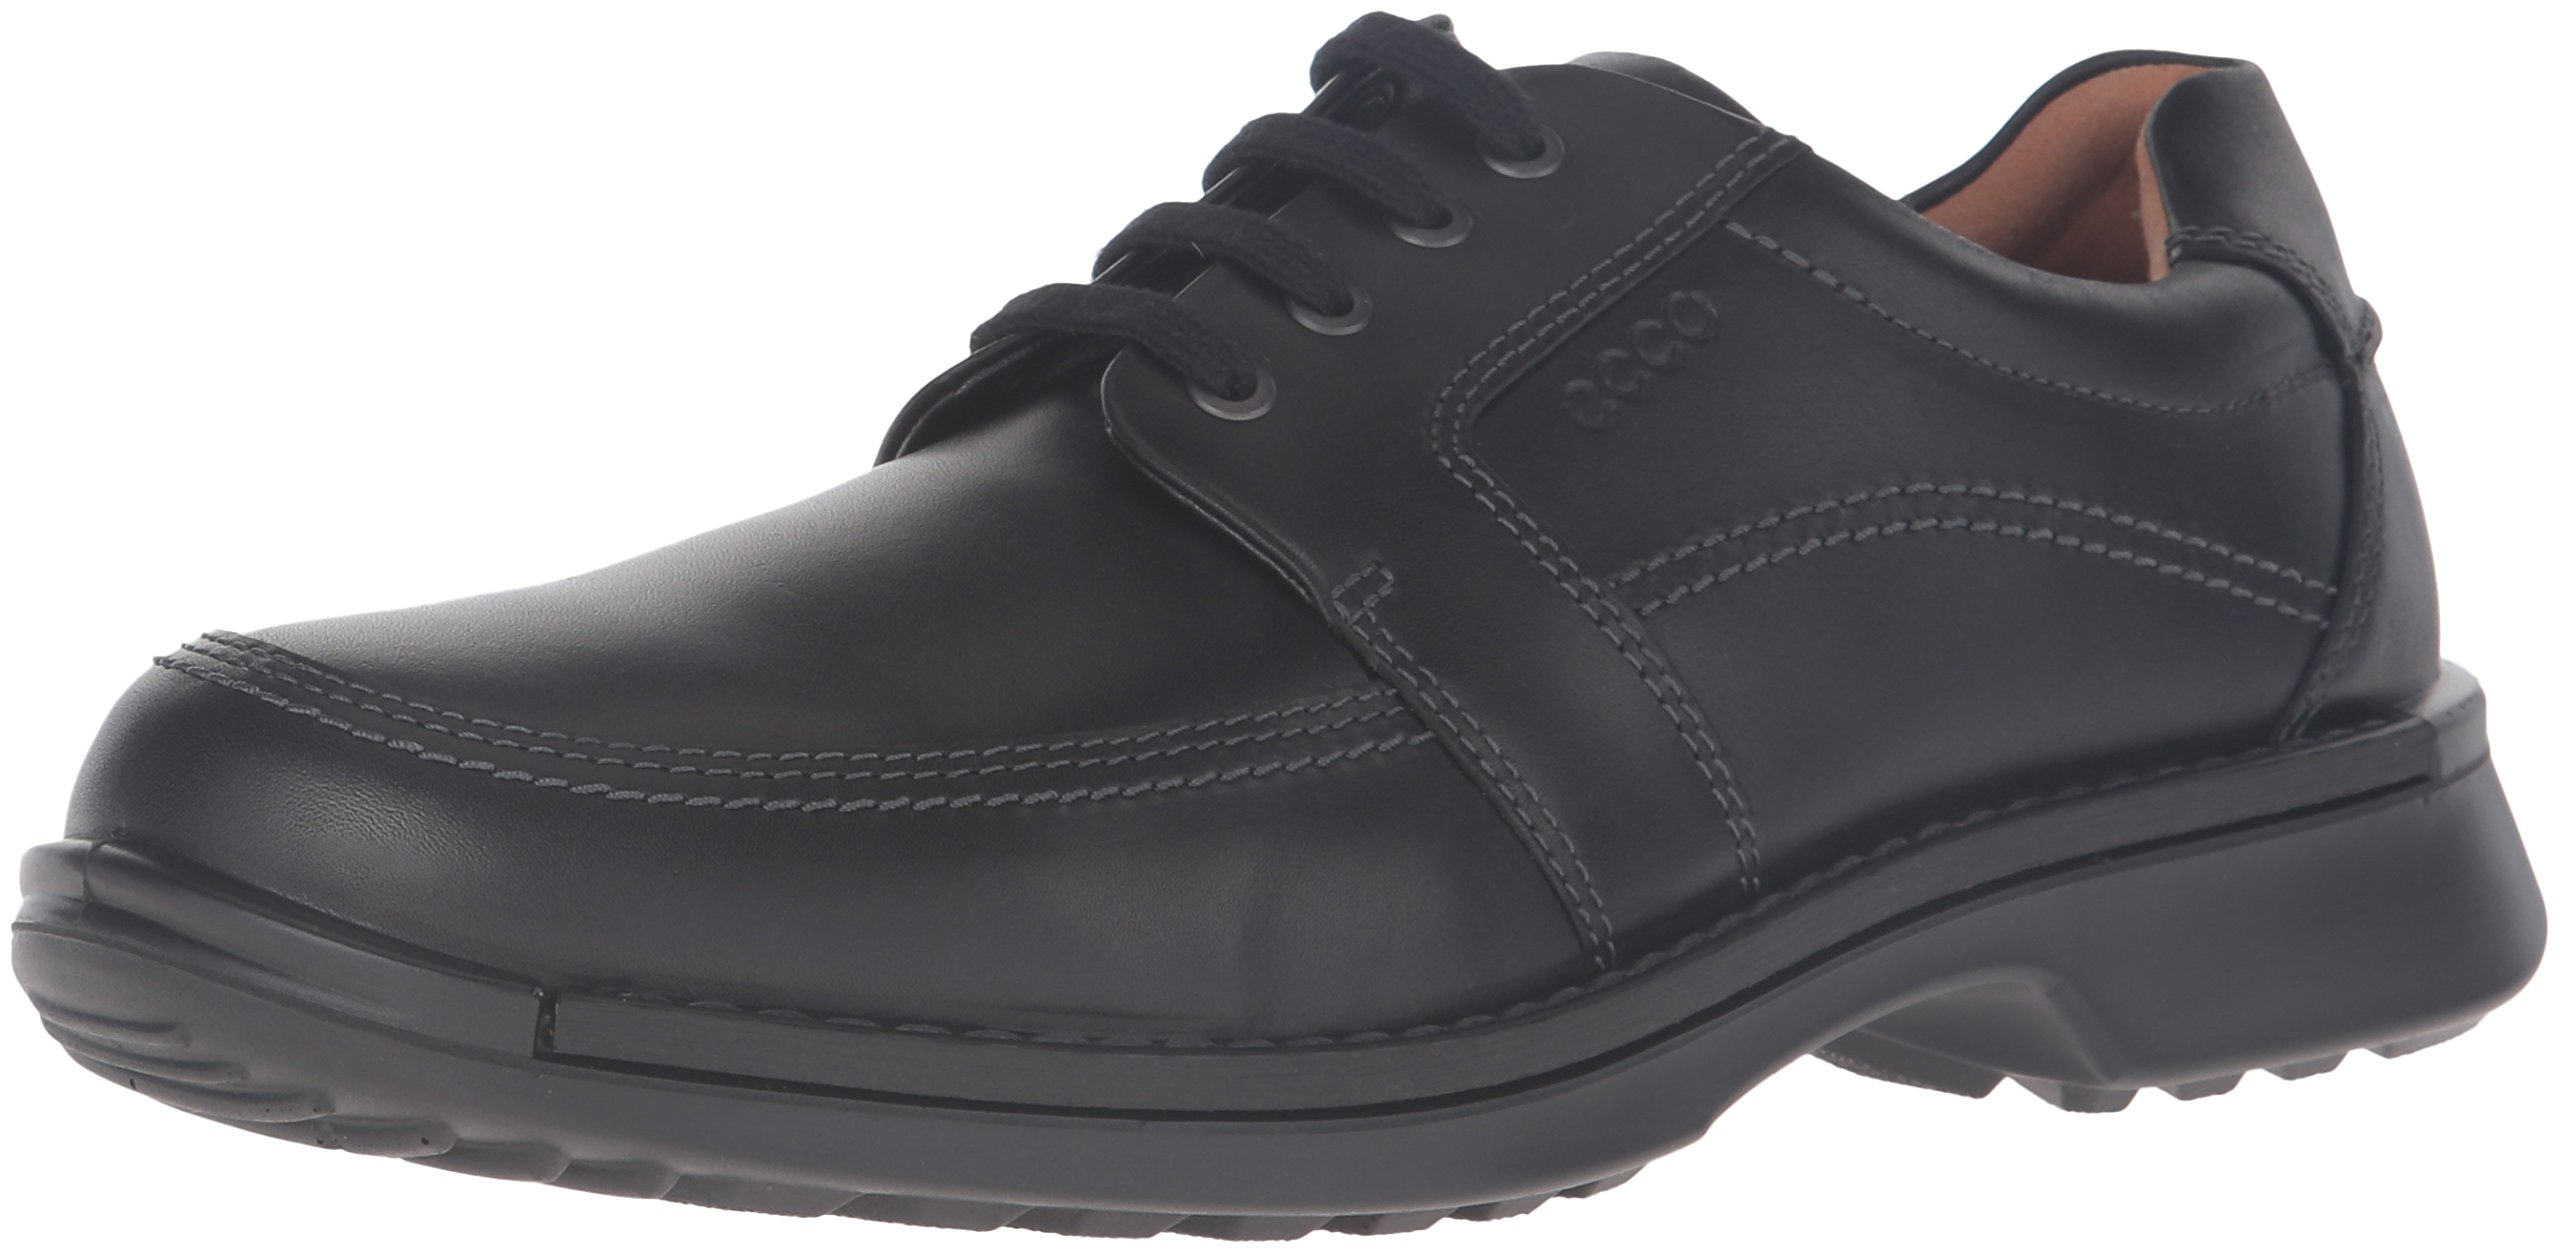 ECCO Men's Fusion II Tie Casual Oxford, Black, 43 EU/9-9.5 M US